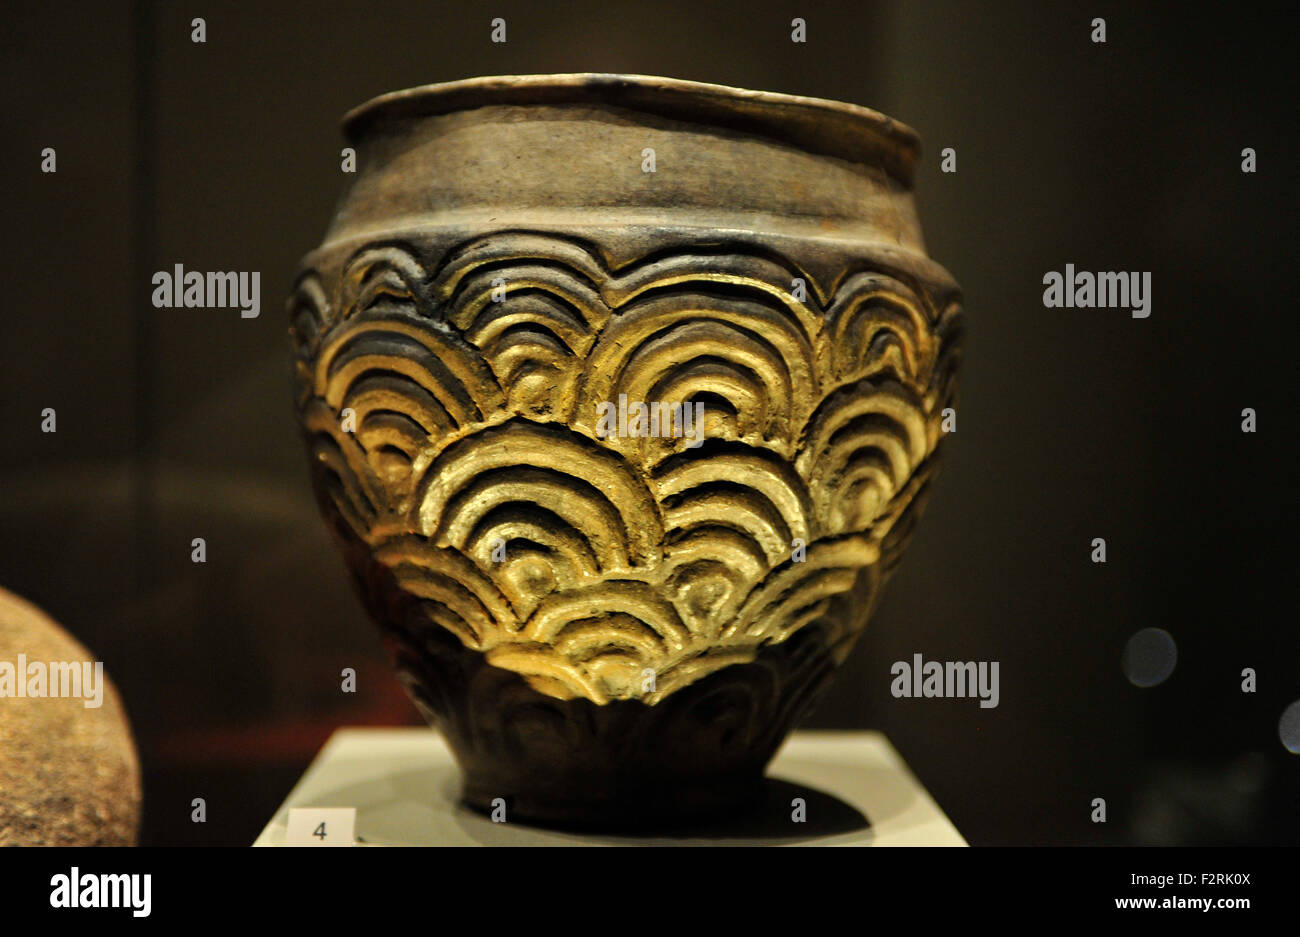 British Museum, London, UK. 23rd September, 2015. Organised with National Museums Scotland, Celts: art and identity - Stock Image